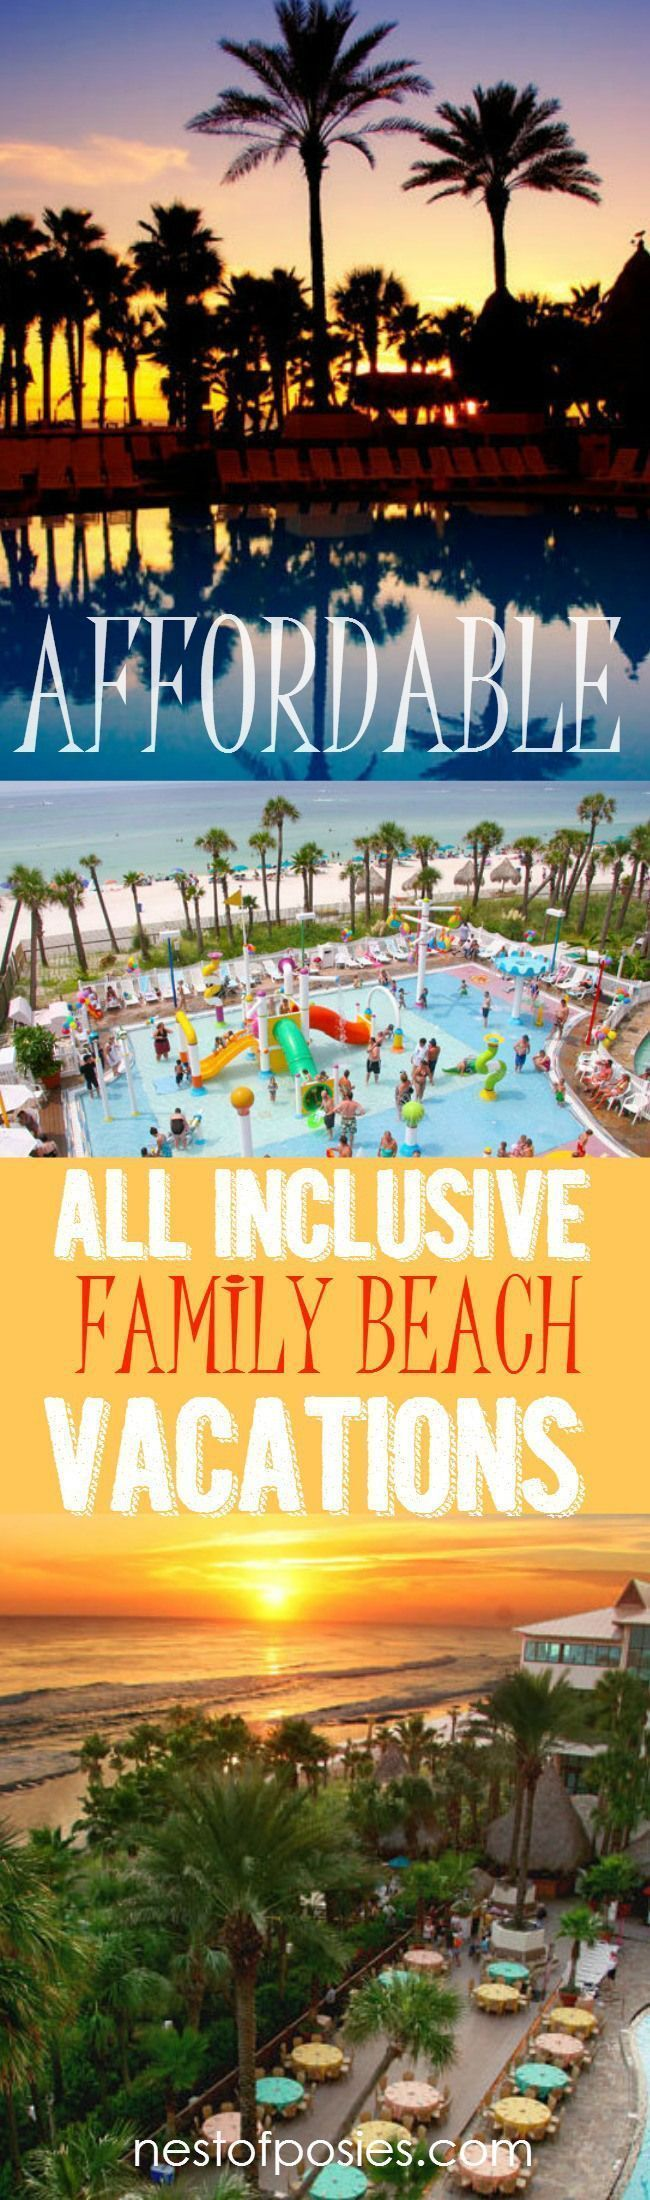 Affordable vacations for the entire family exactly that